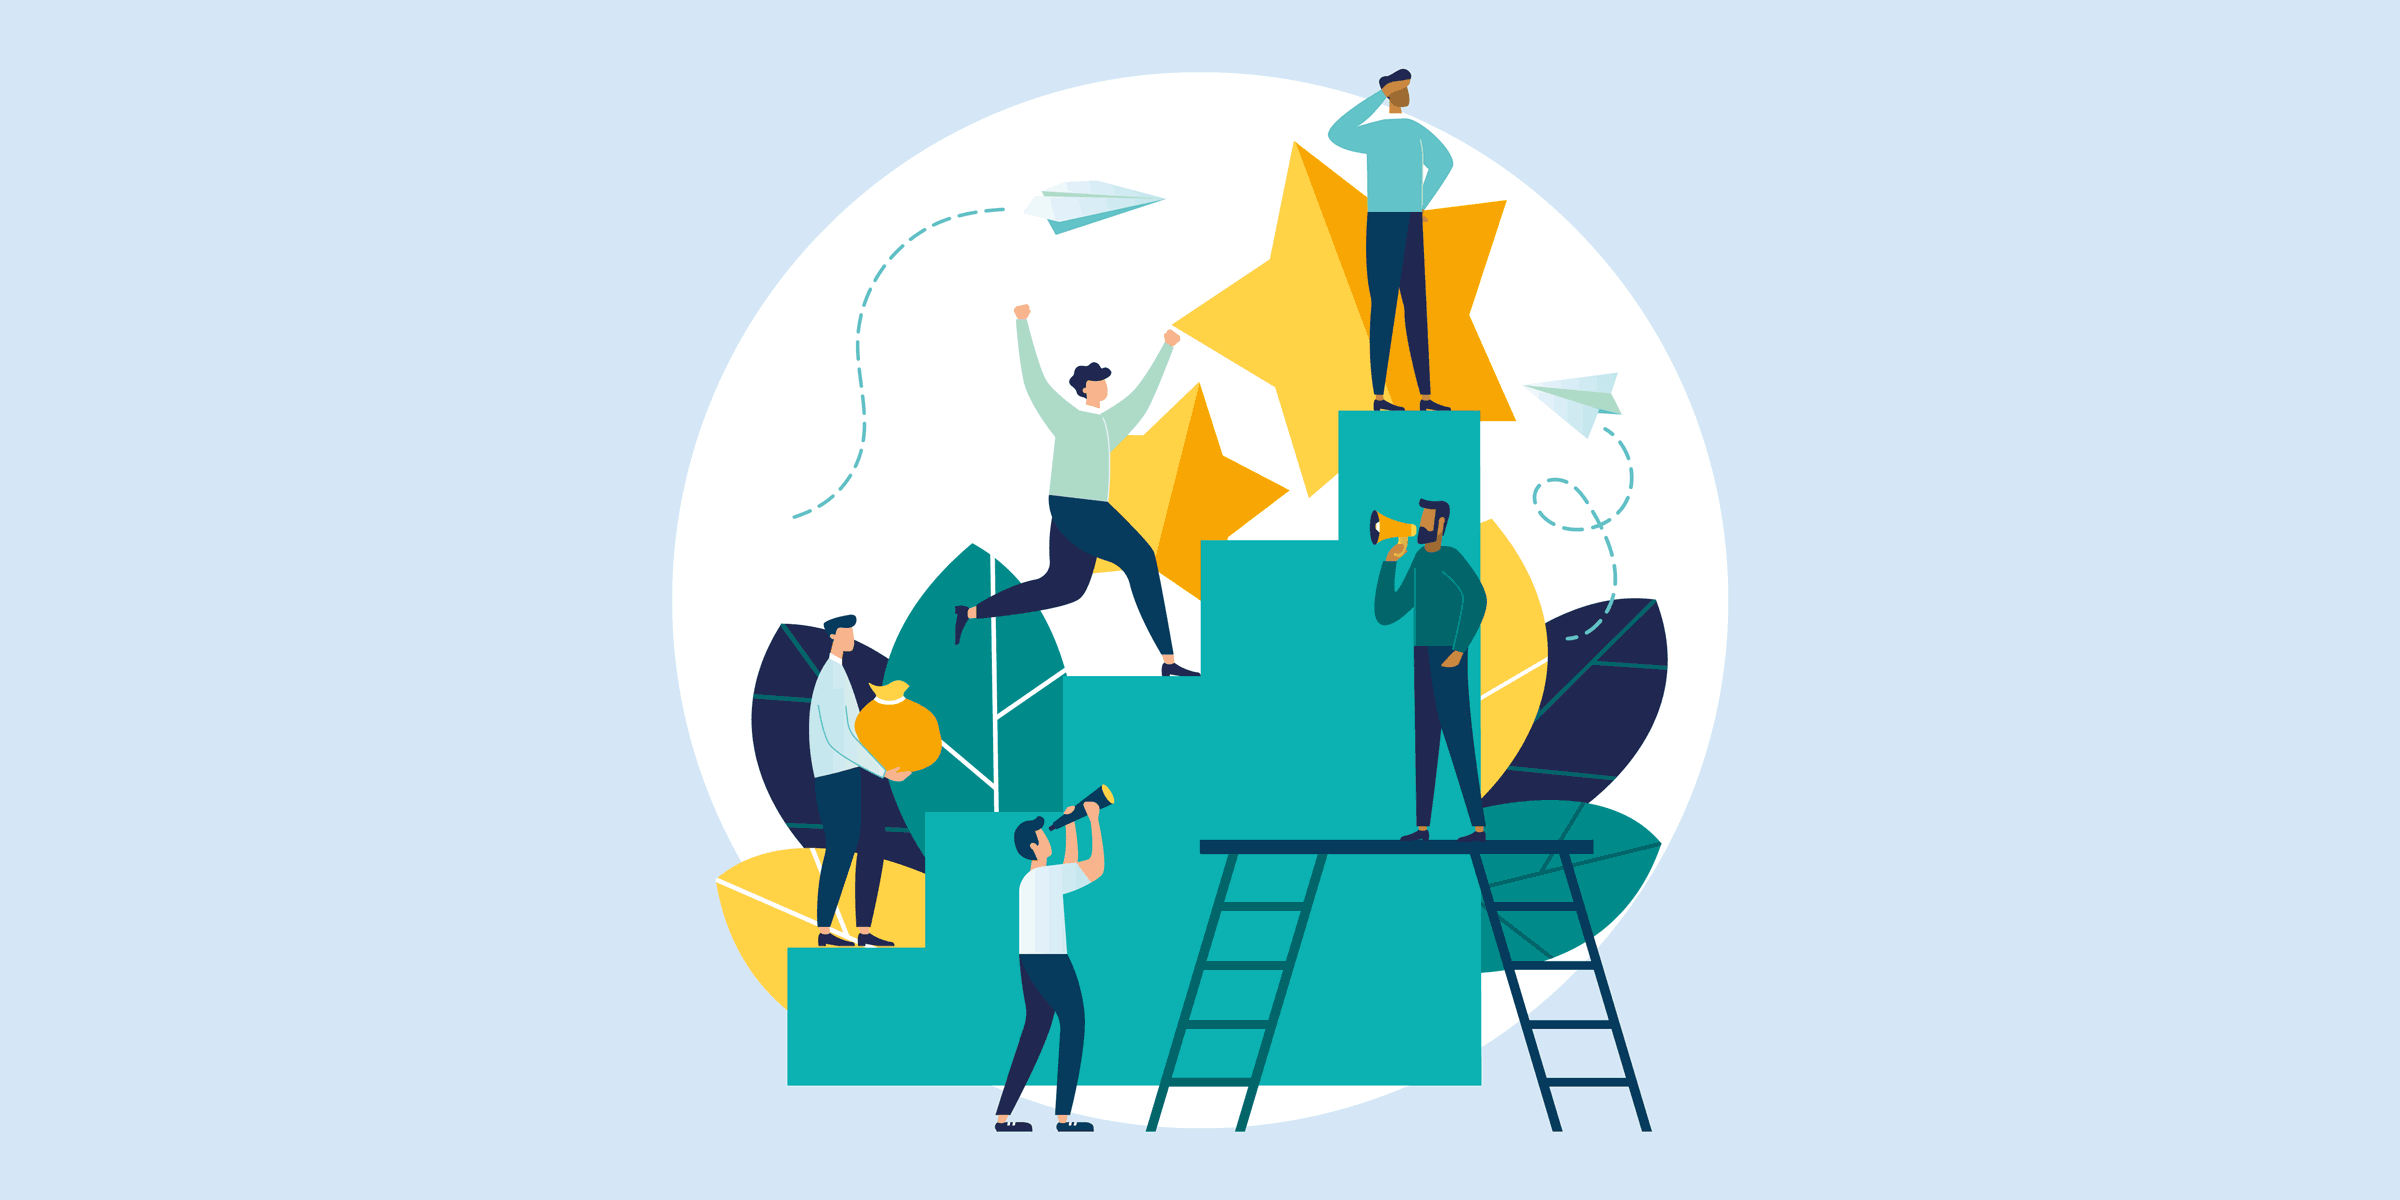 illustration showing people climbing up steps, talking through a bullhorn, and looking around, representing measuring the roi on social media